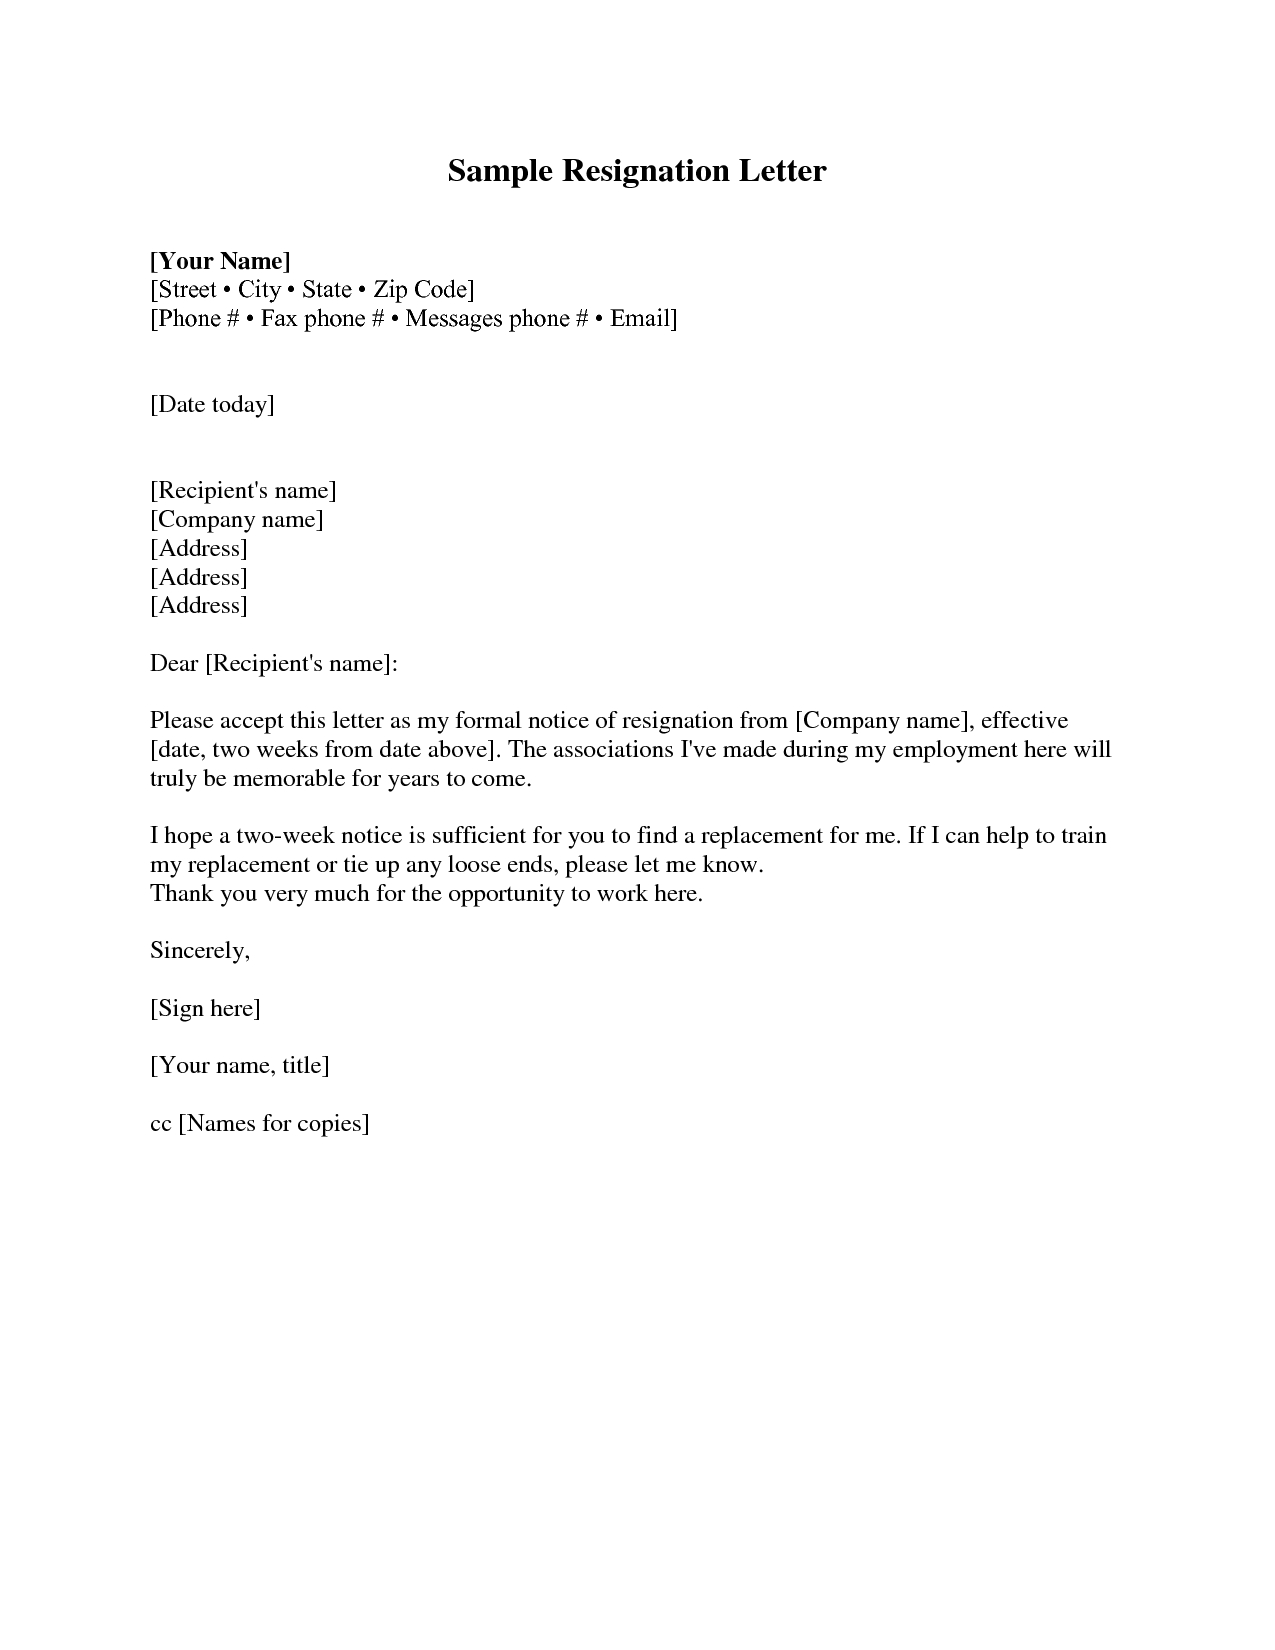 official letter of resignation template example-resignation letter sample 2 weeks notice 19-g